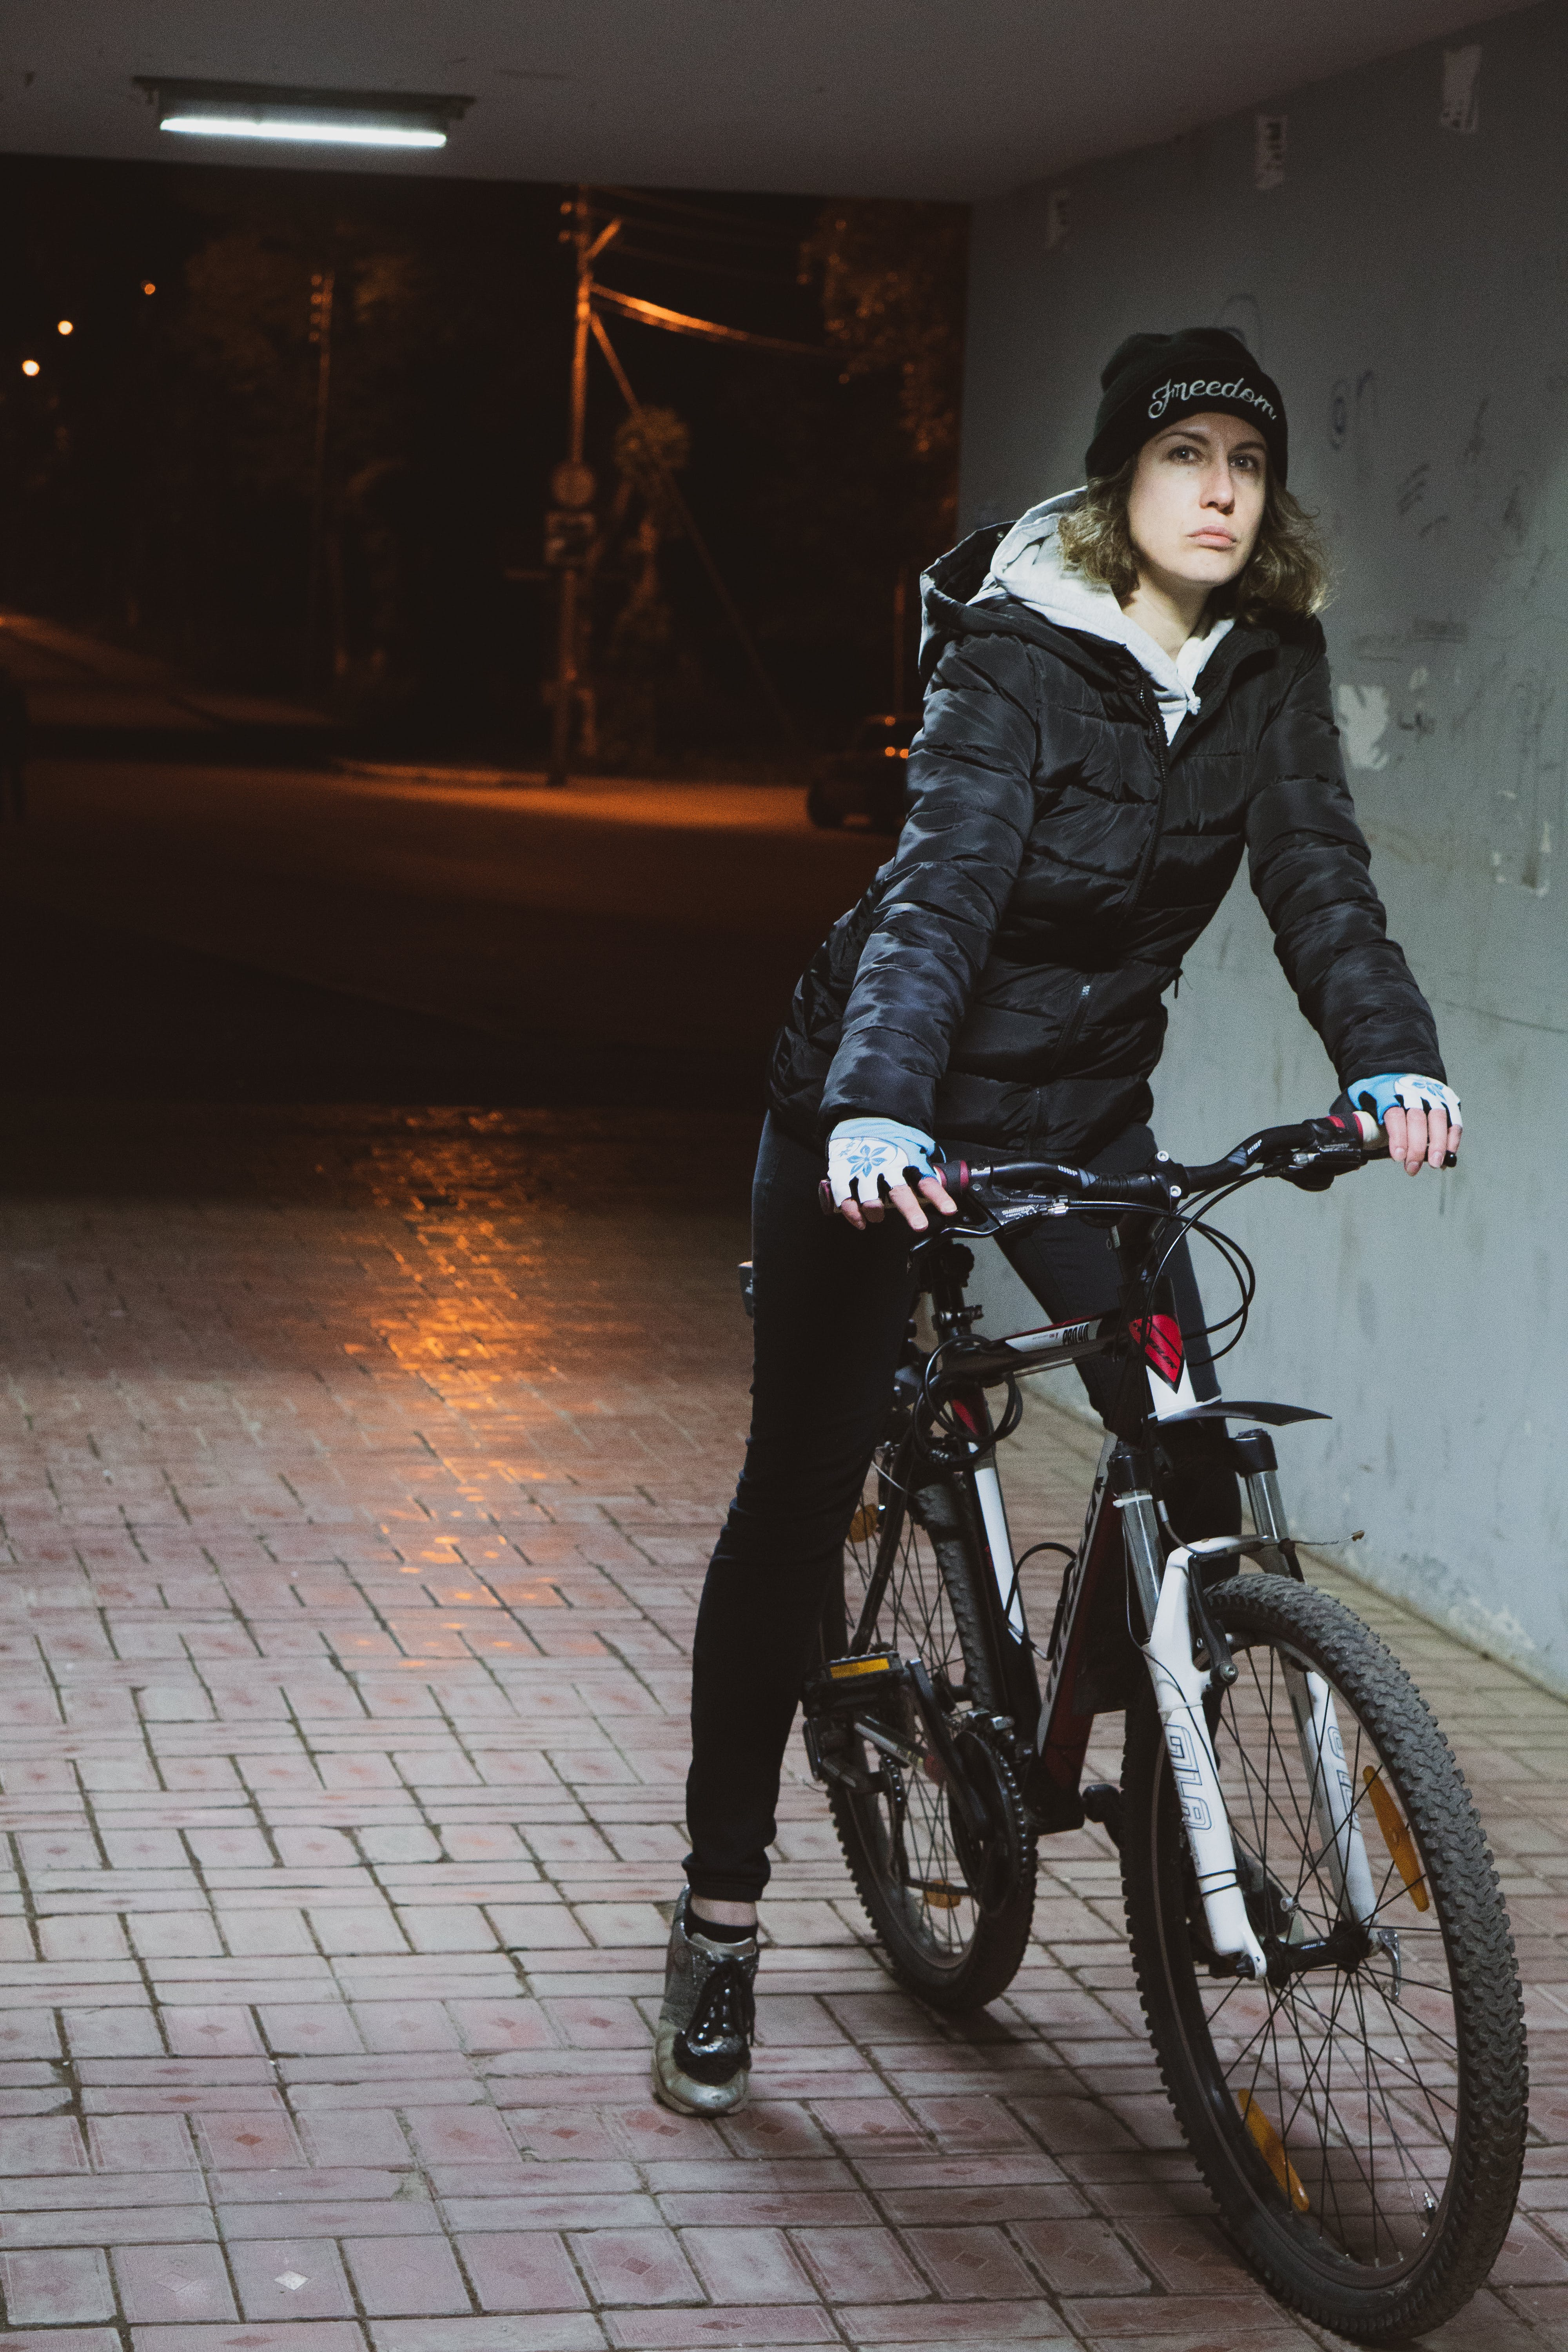 Woman Wearing Black Coat Riding on Her Bicycle